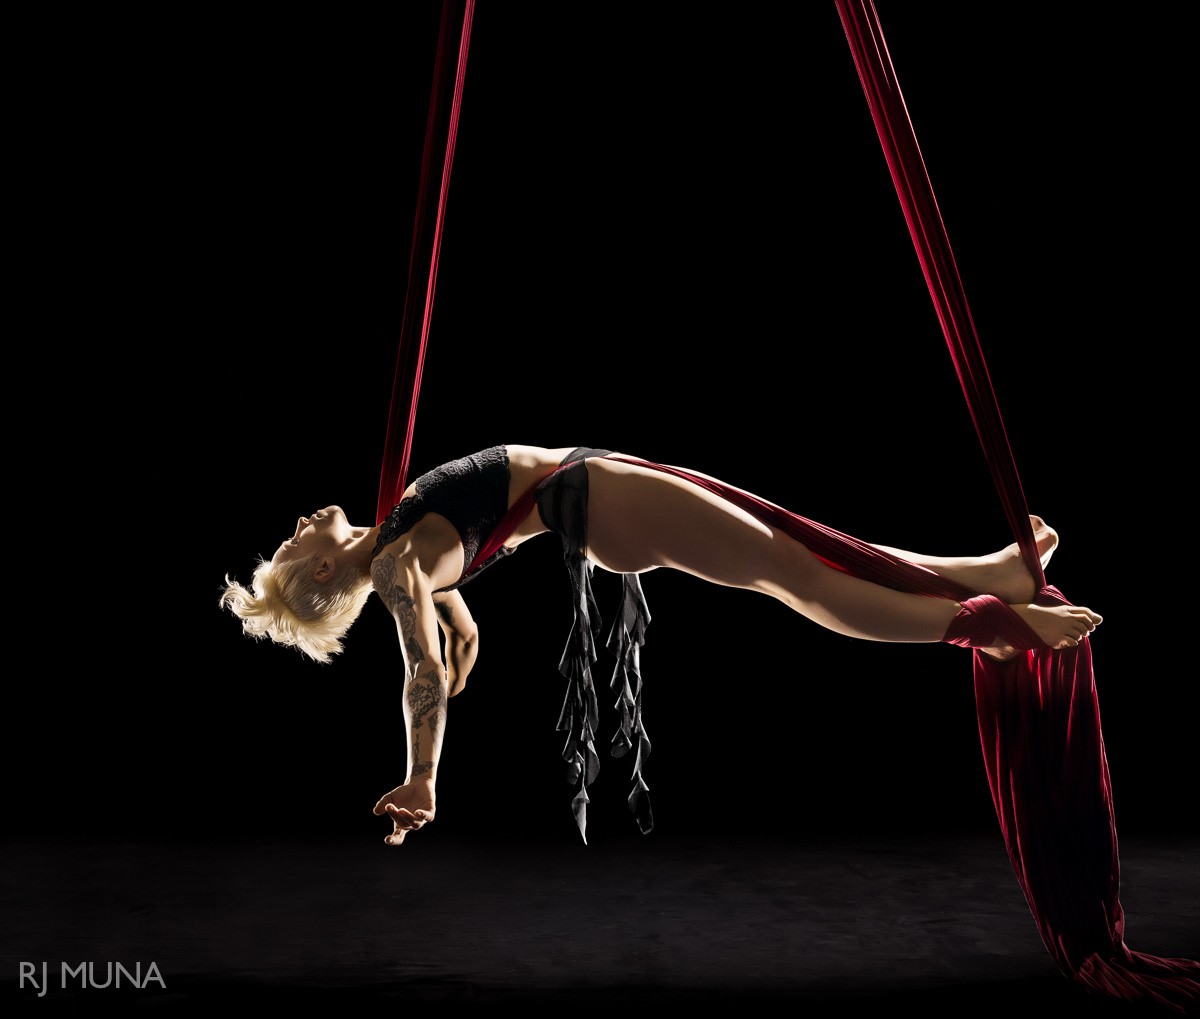 This #FantasticFriday We're Hanging Around With Aerialist